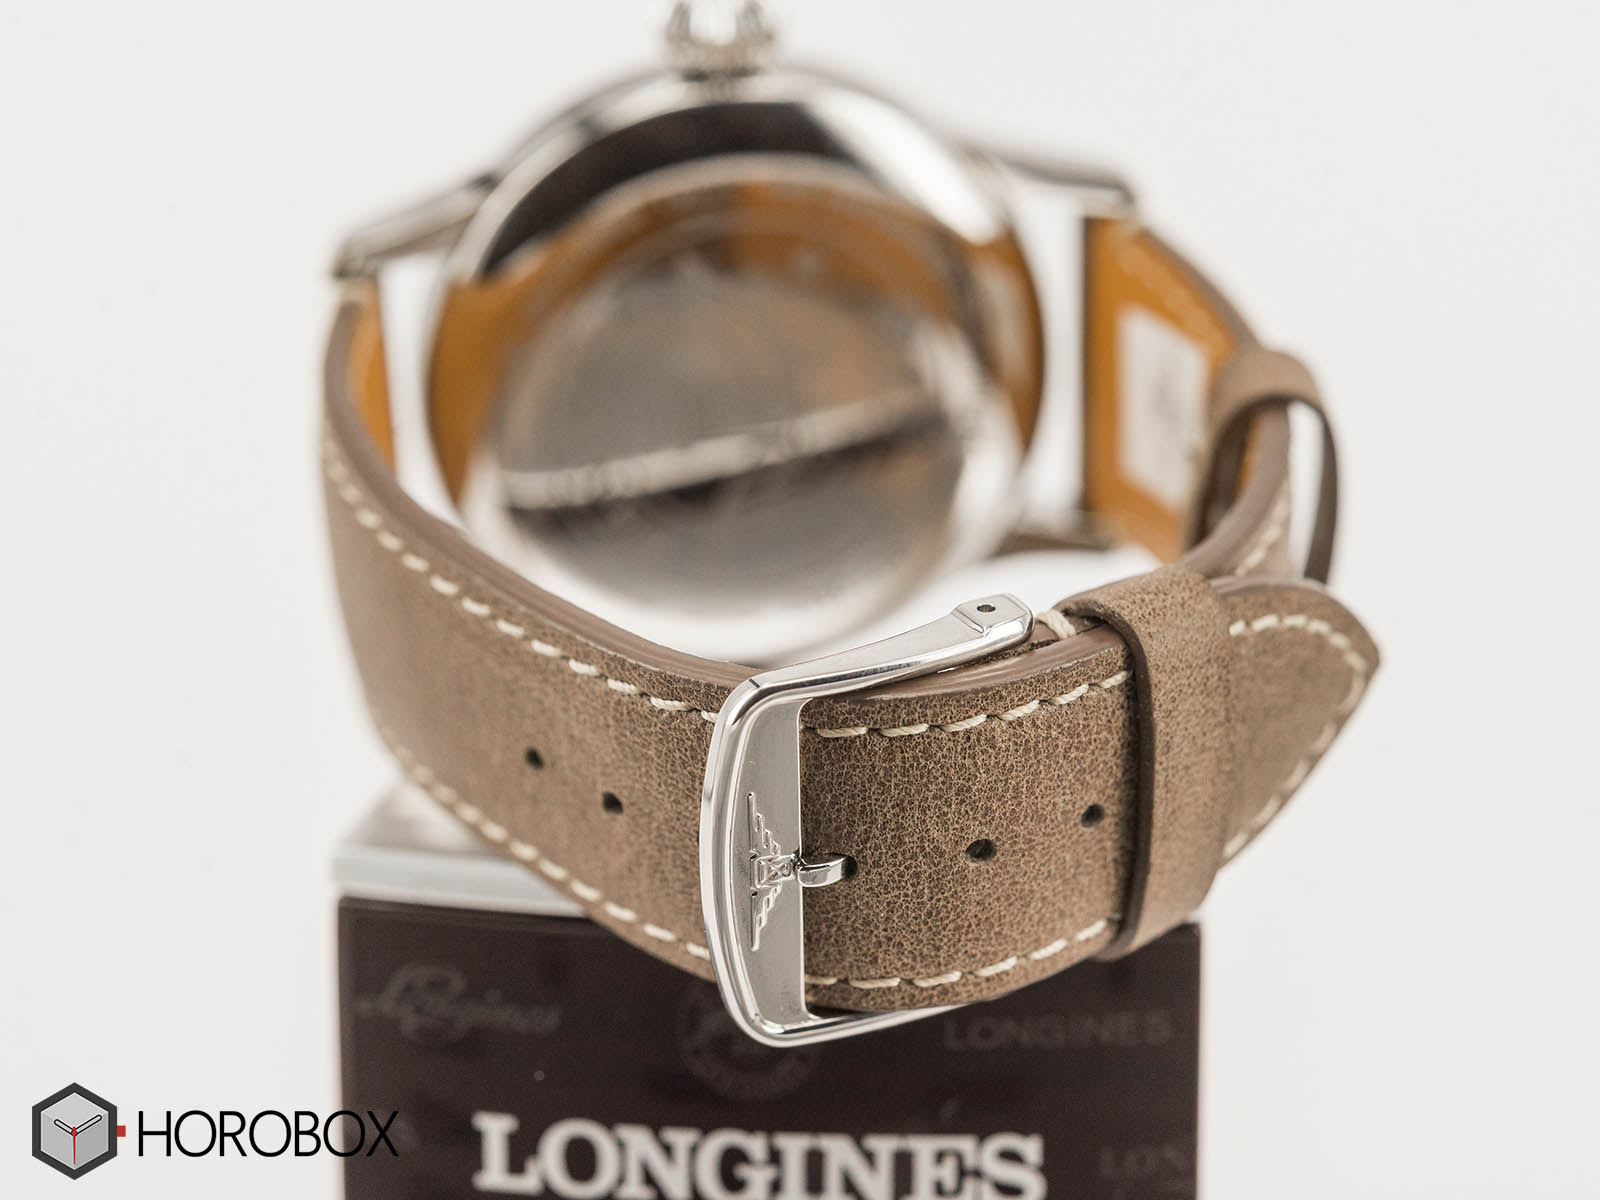 Longines-Lindbergh-Hour-Angle-Watch-90th-Anniversary-4.jpg